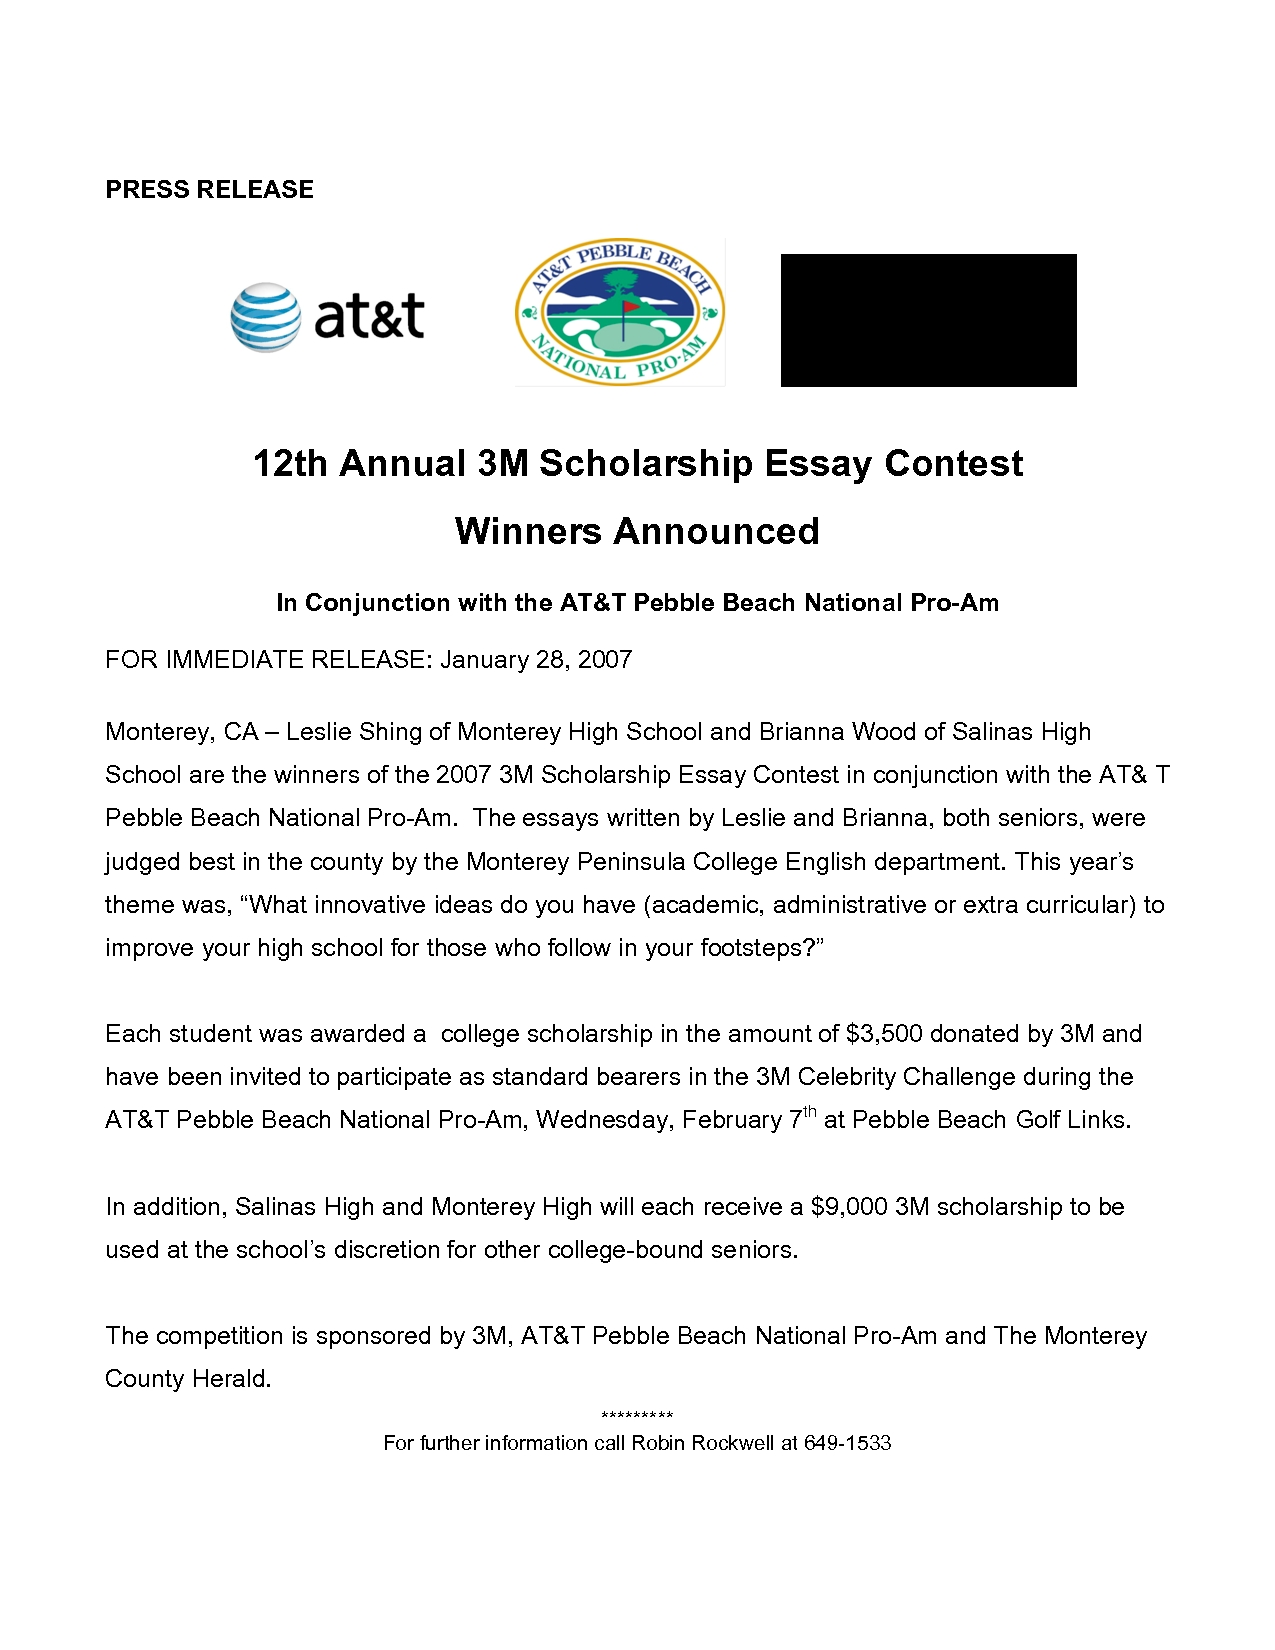 001 Essay Scholarships High School Seniors Example Student Resume